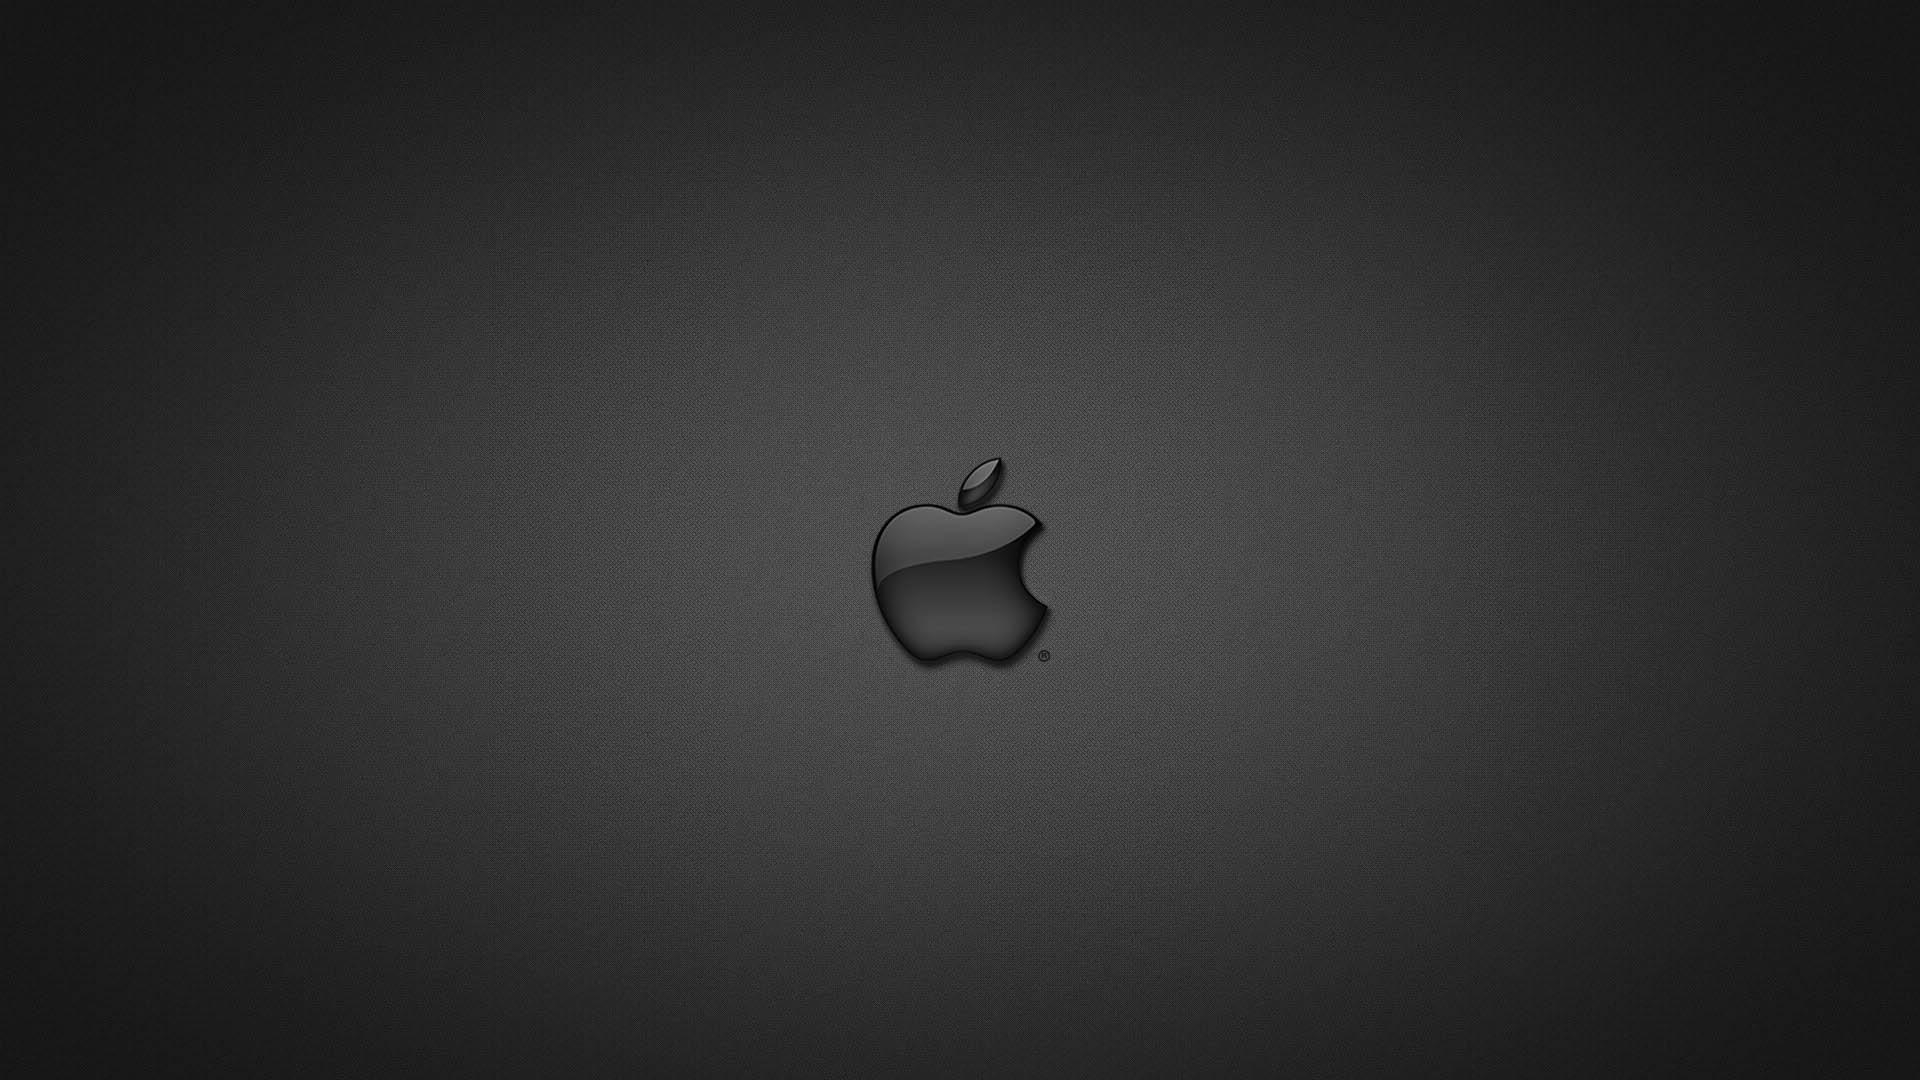 Hd Apple Wallpapers Sf Wallpaper